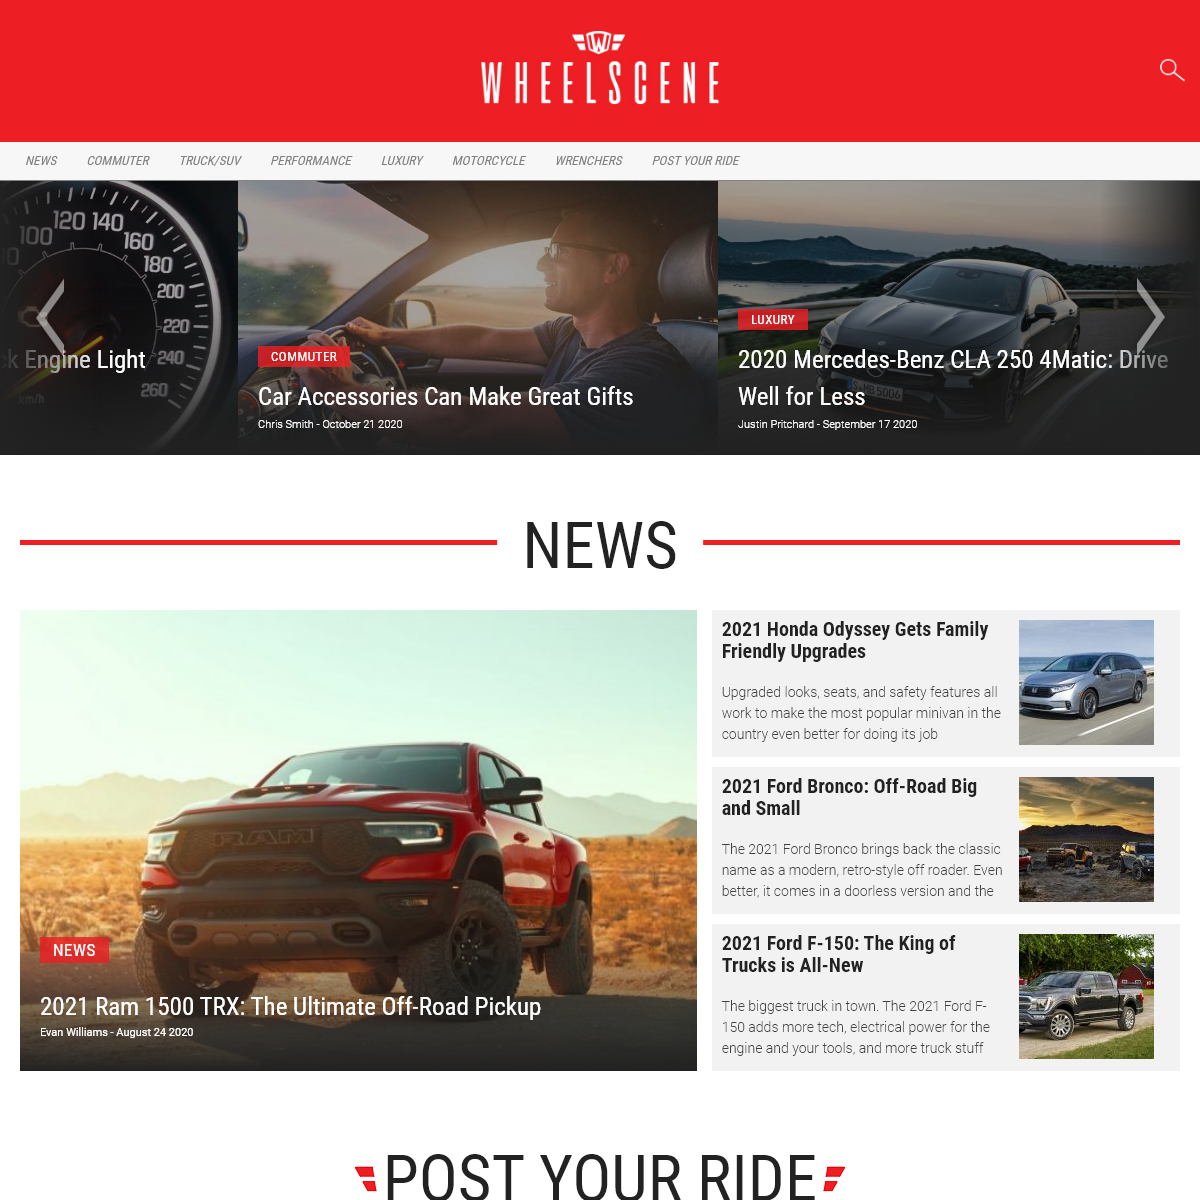 WheelScene - Automotive News, Reviews and How-To`s